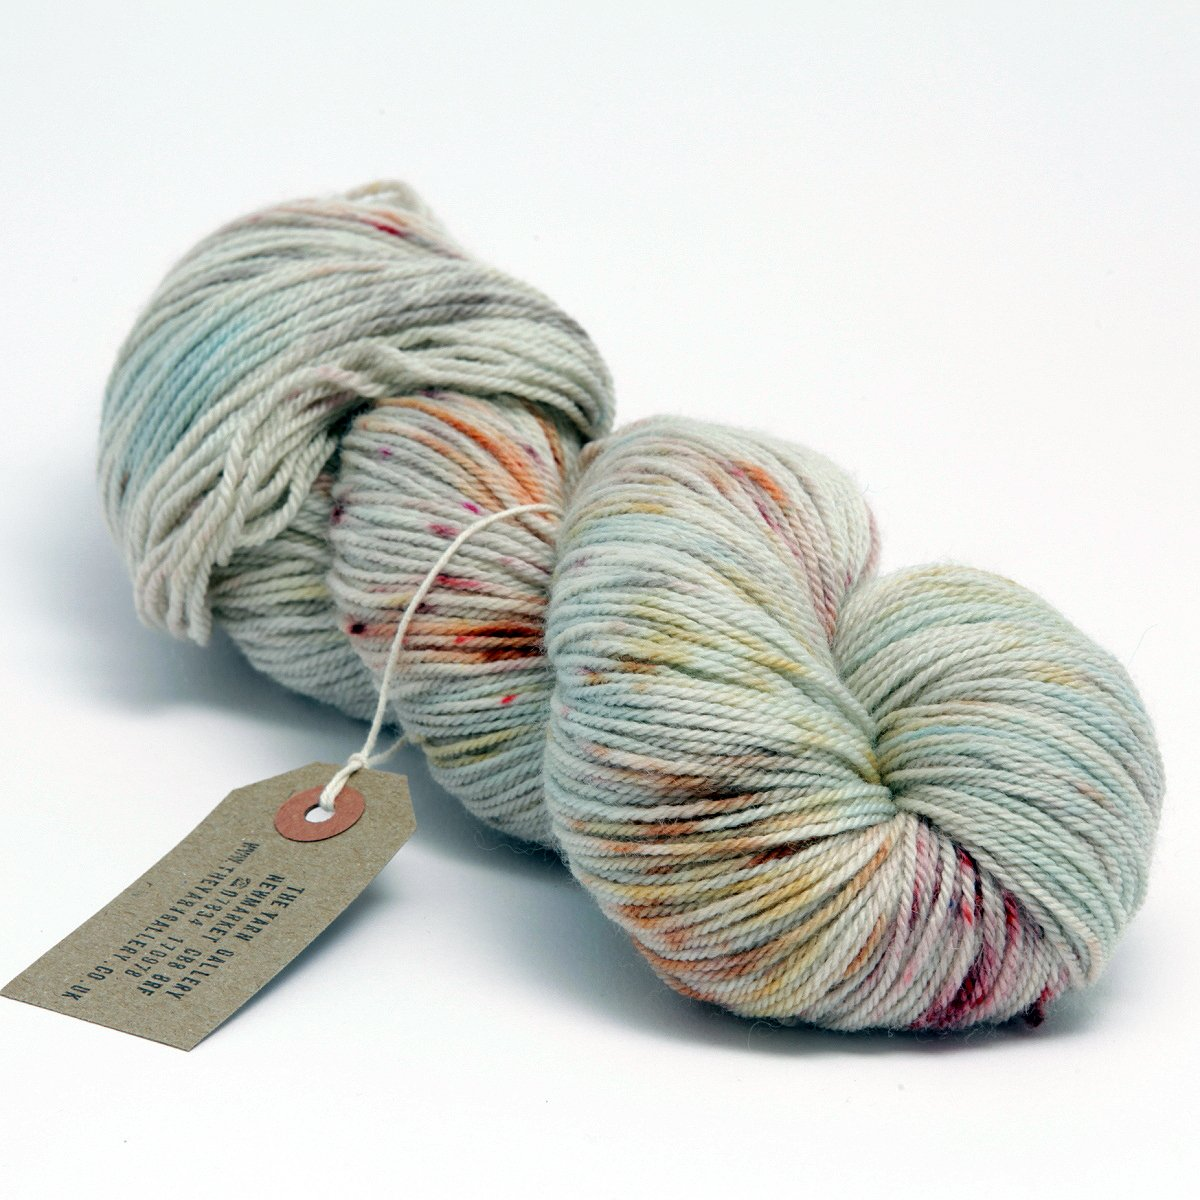 Hand Dyed Sock Yarn - Speckle Dyed Merino Cashmere